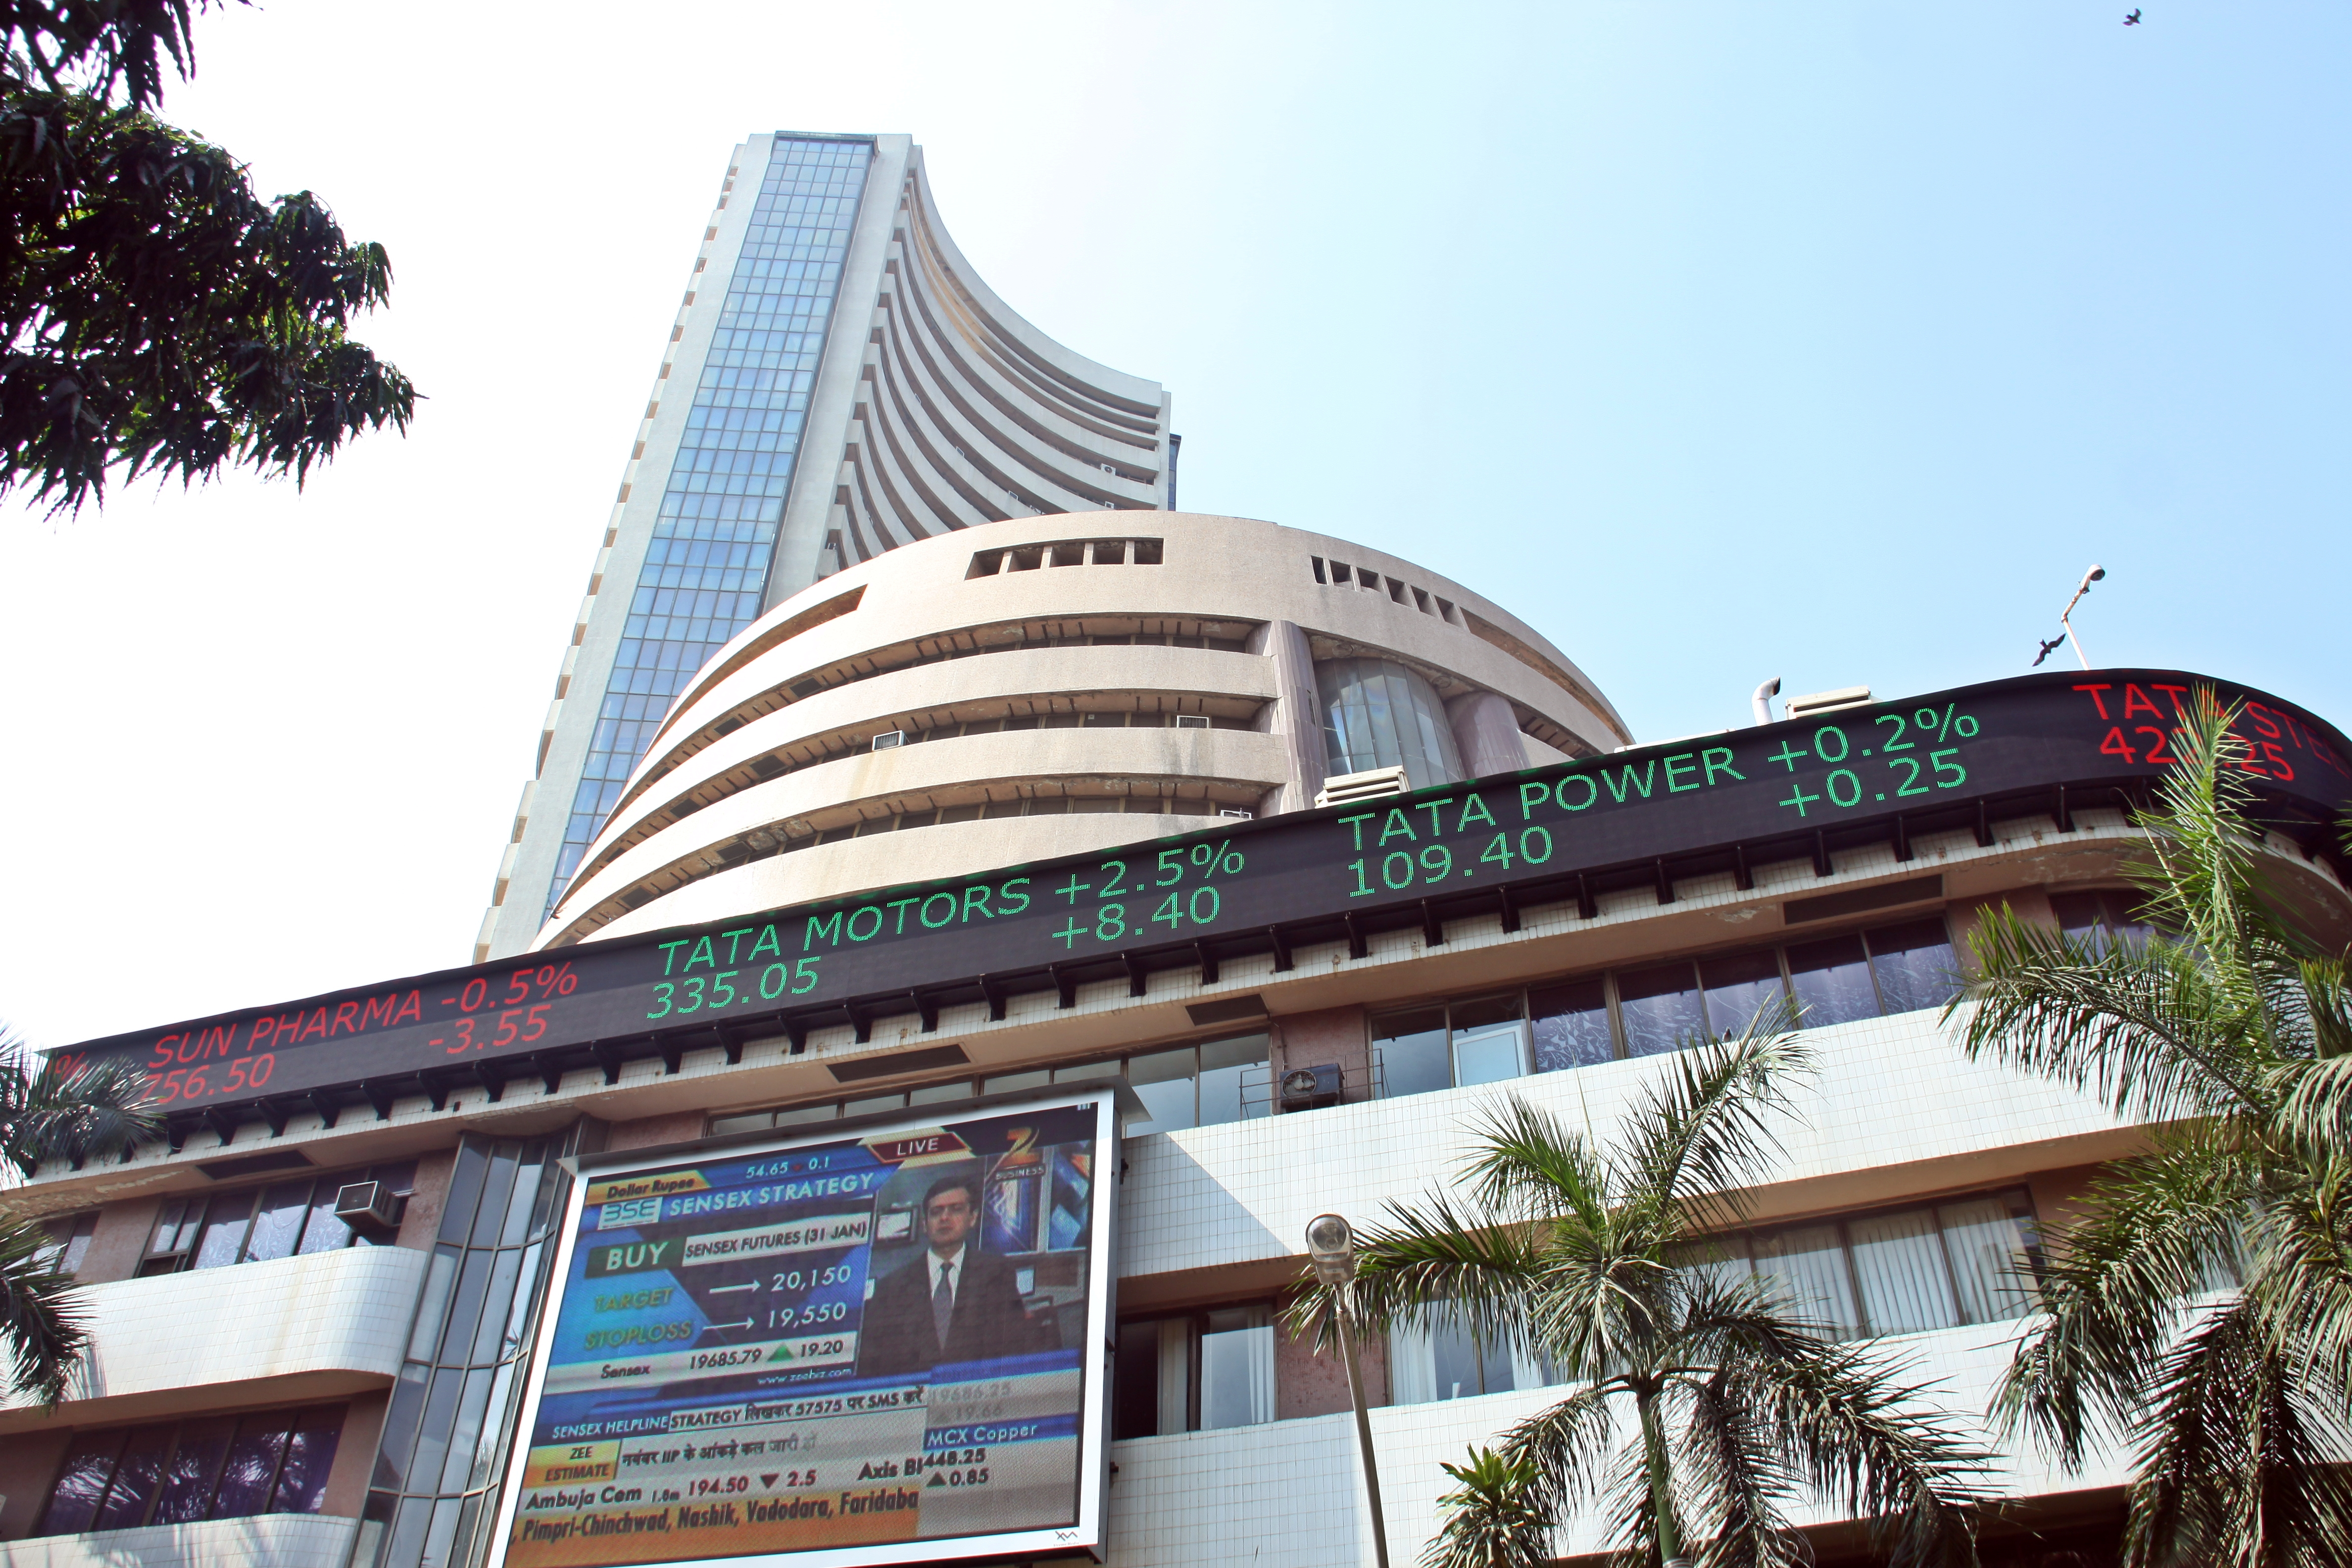 Mumbai Candid Virtual Tour Bungalow 9: July 9: The Day BSE Was Created